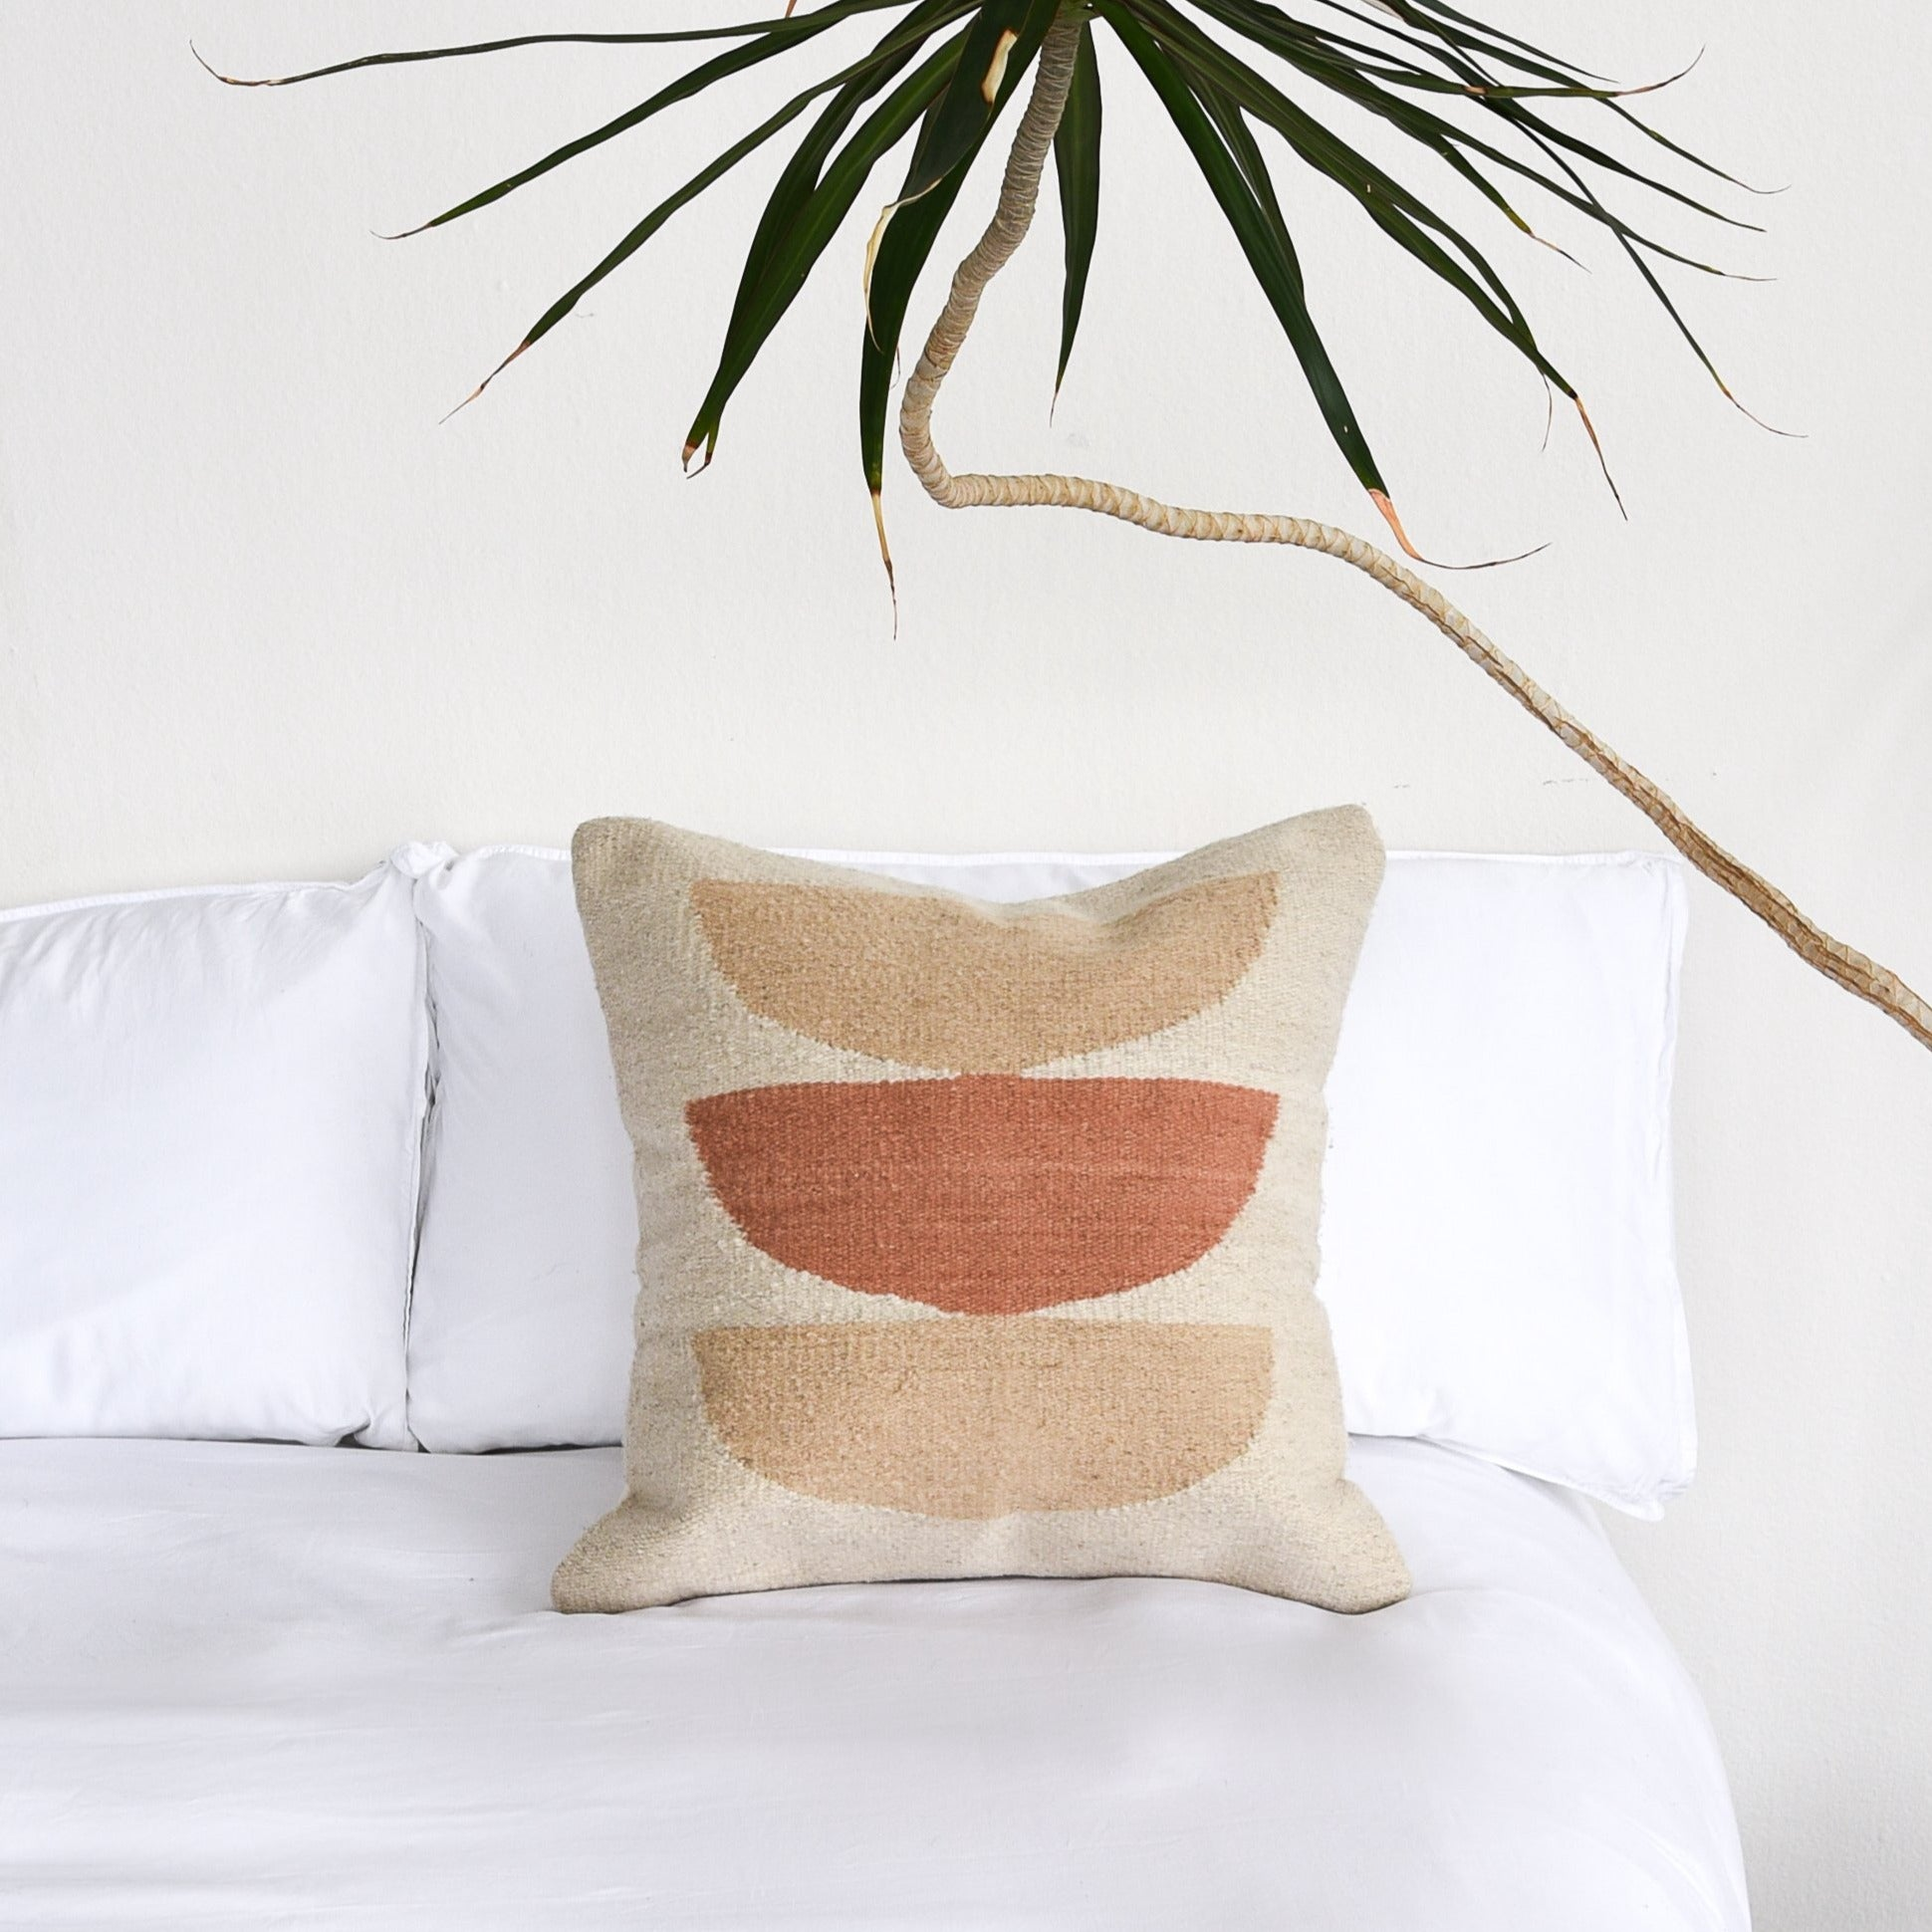 A handwoven wool pillow on a white bed with a yucca plant alongside.